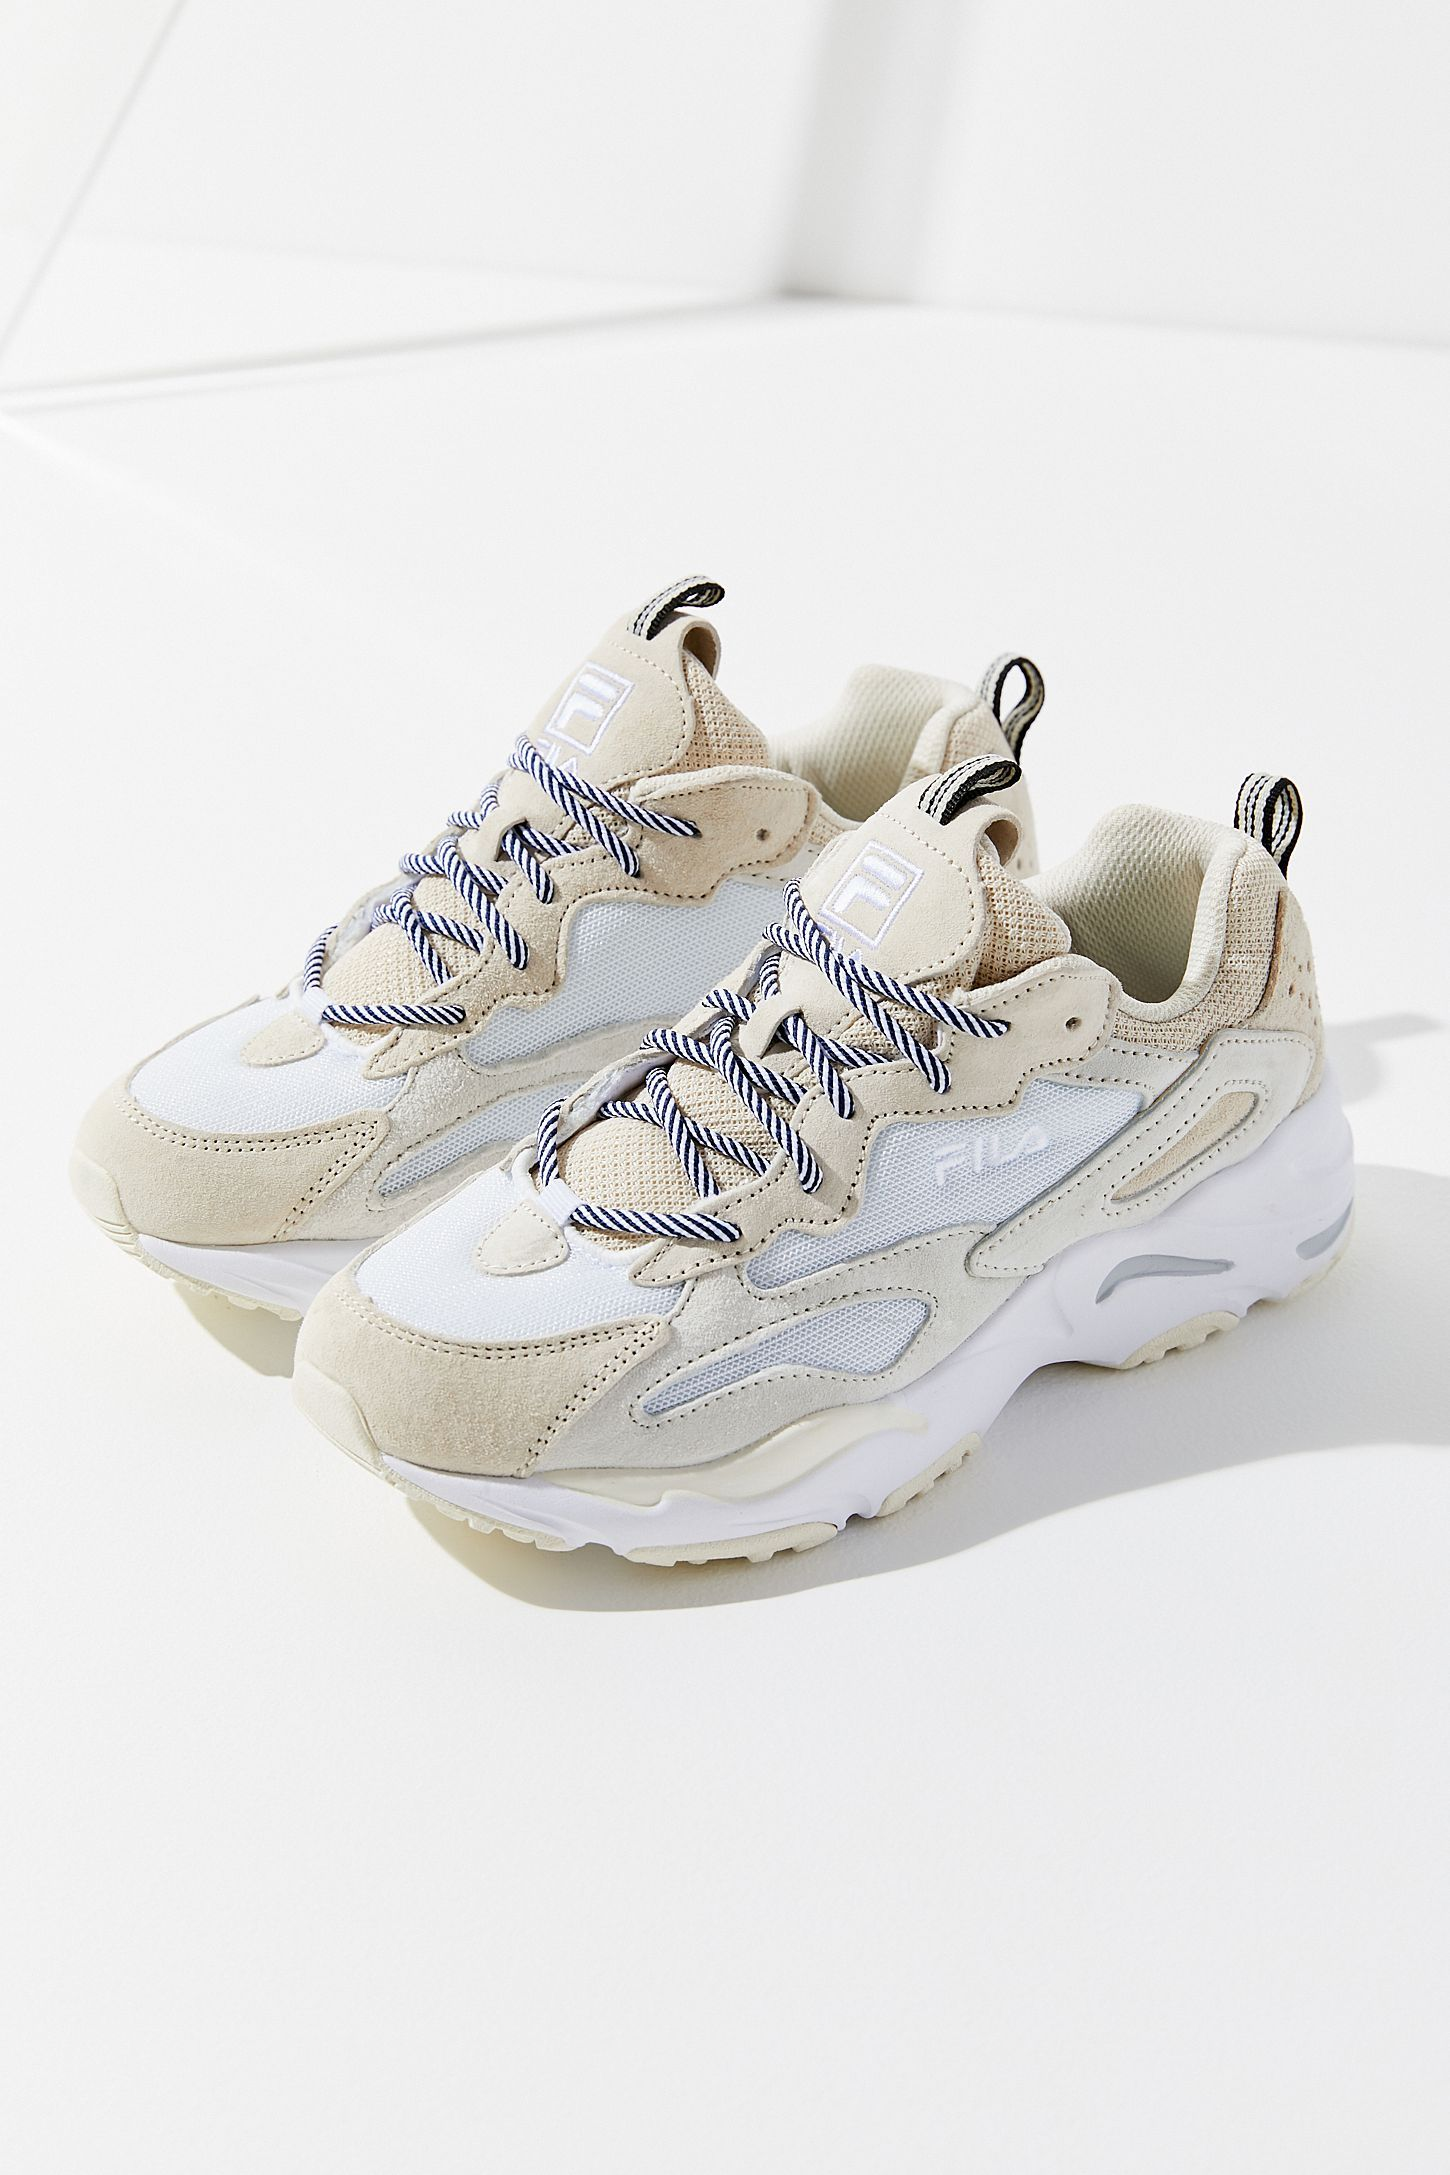 FILA Ray Tracer Sneaker | Urban Outfitters | Giầy sneaker nữ ...